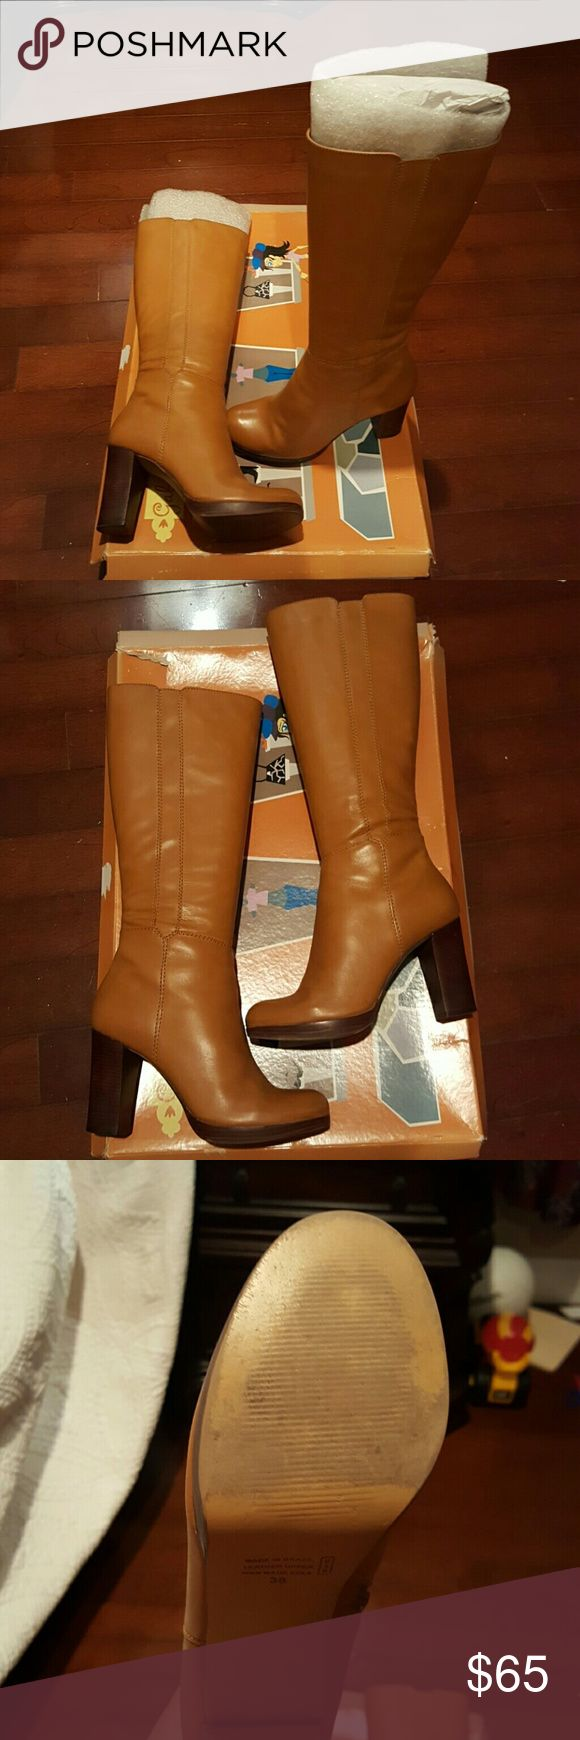 Gabriella Rocha leather boots Biscuit in color soft leather boots with 3 1/2 inch heel worn a couple of times. Gabriella Rocha Shoes Heeled Boots